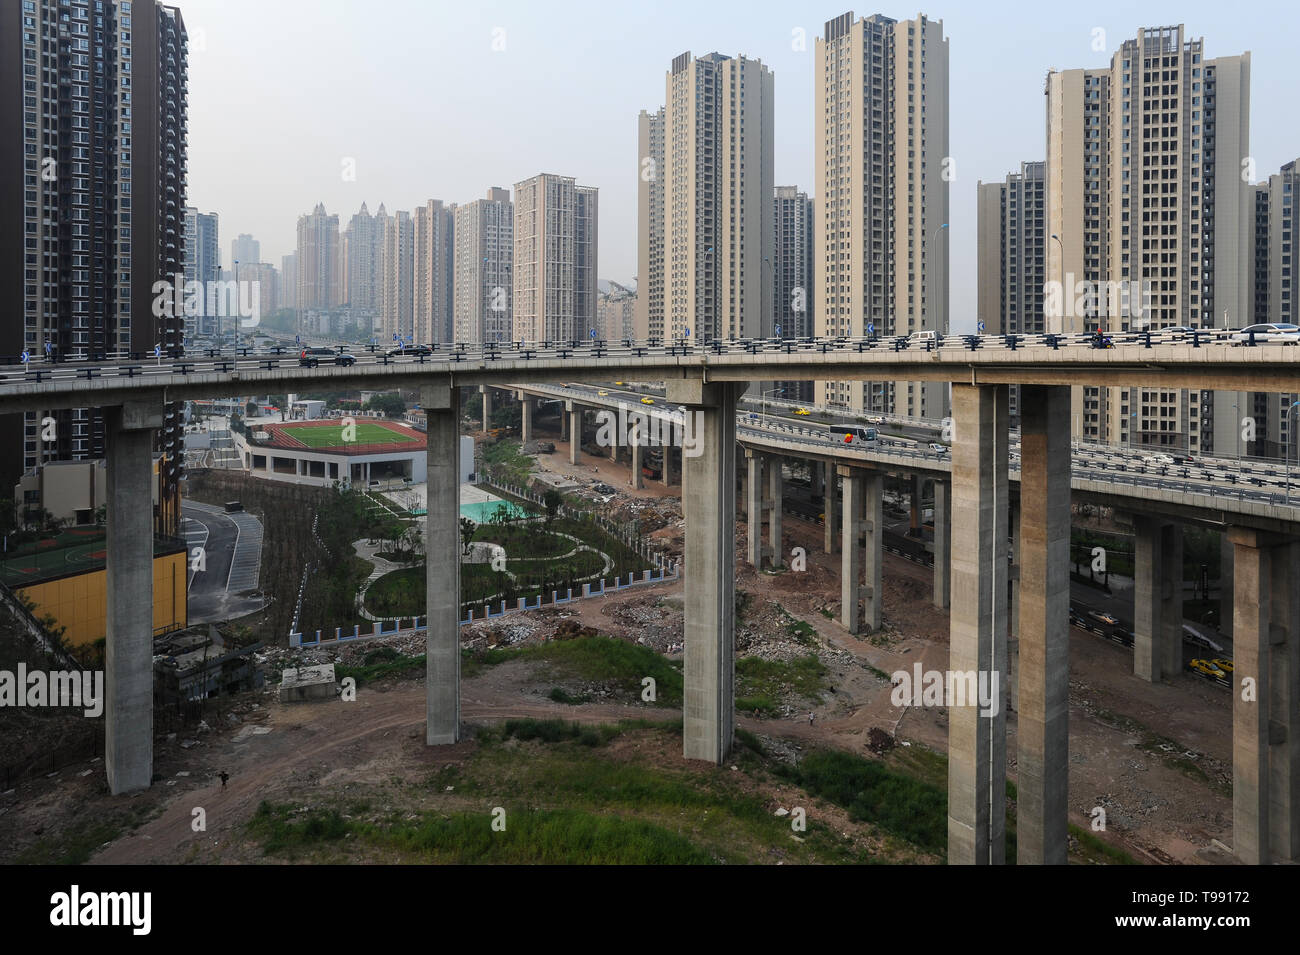 03.08.2012, Chongqing, , China - New skyscraper settlements and highways on the outskirts of the Metrople. The megacity lies at the confluence of two  Stock Photo